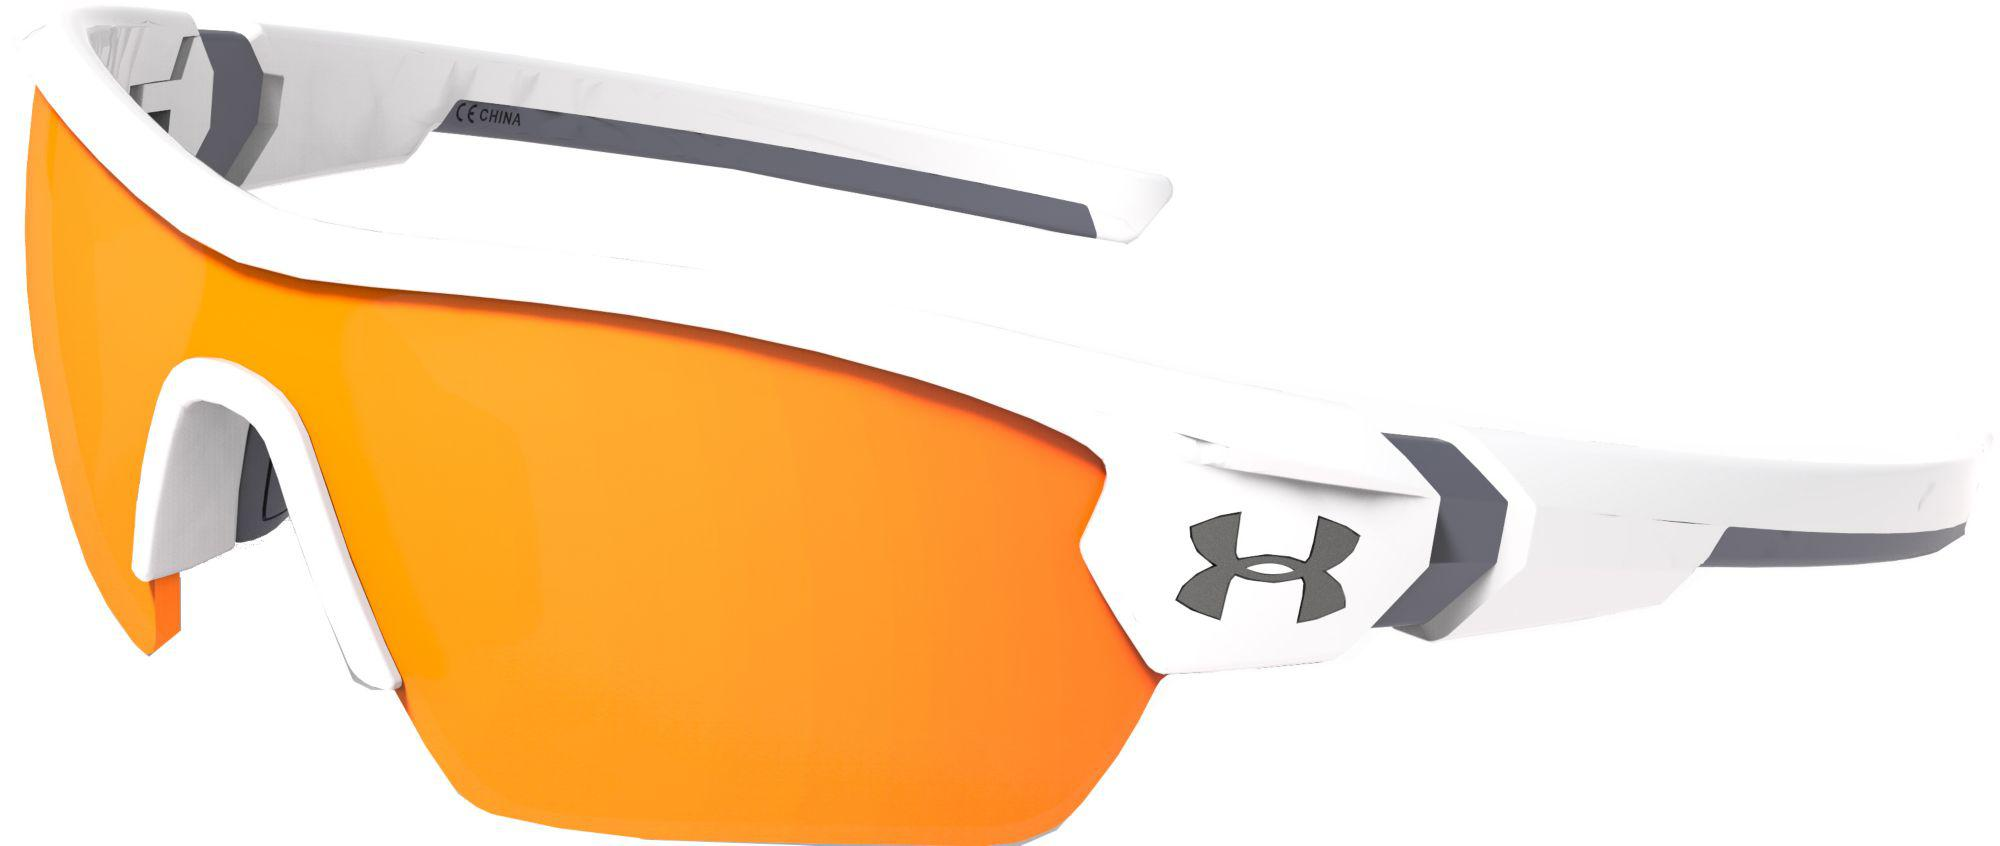 6c1812c7ecb5 Lyst - Under Armour Youth Menace Sunglasses in White for Men